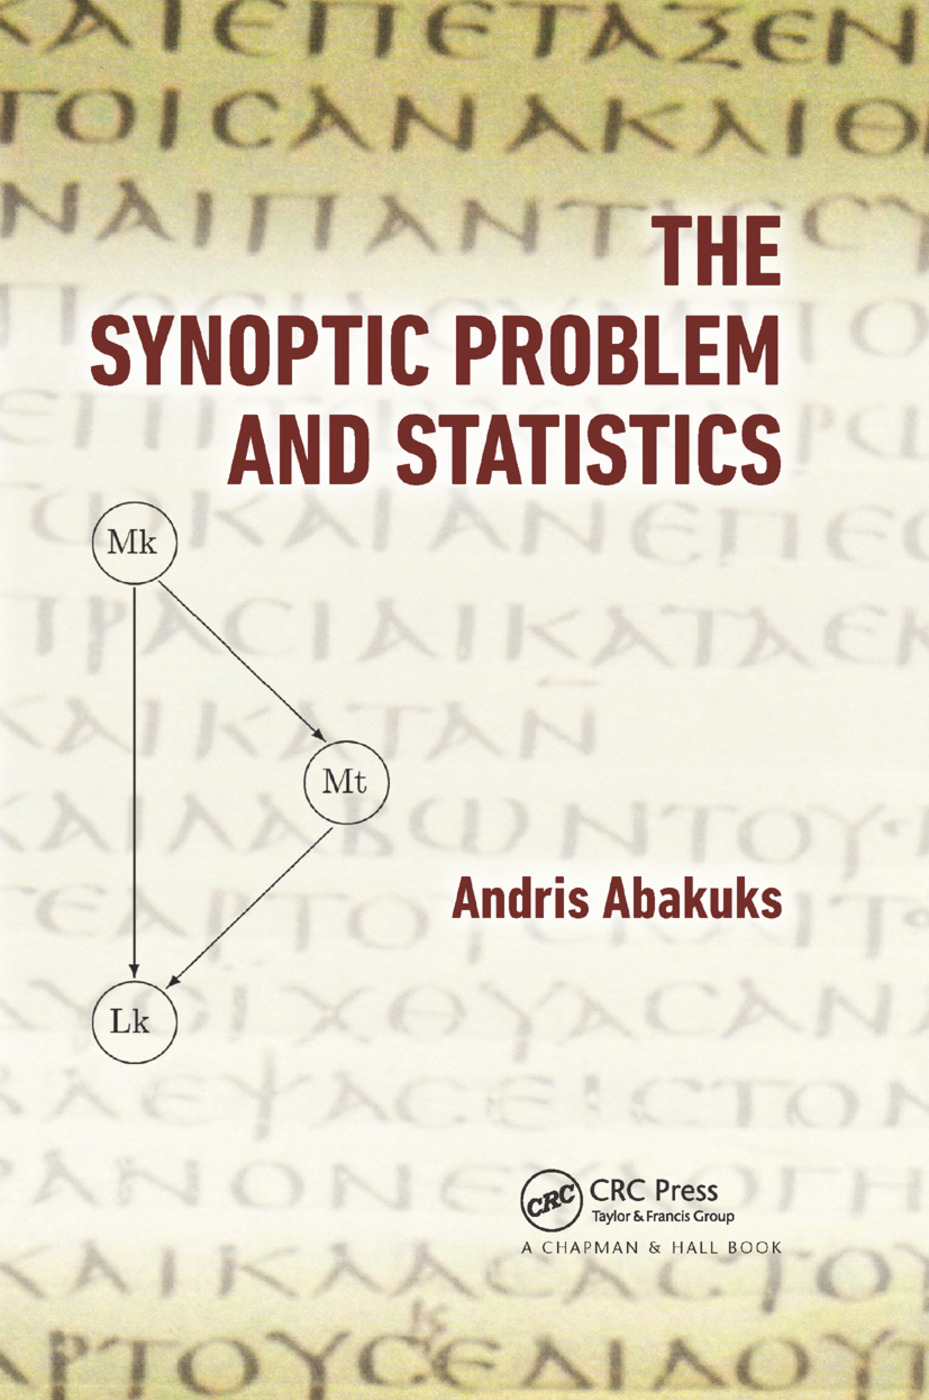 The Synoptic Problem and Statistics